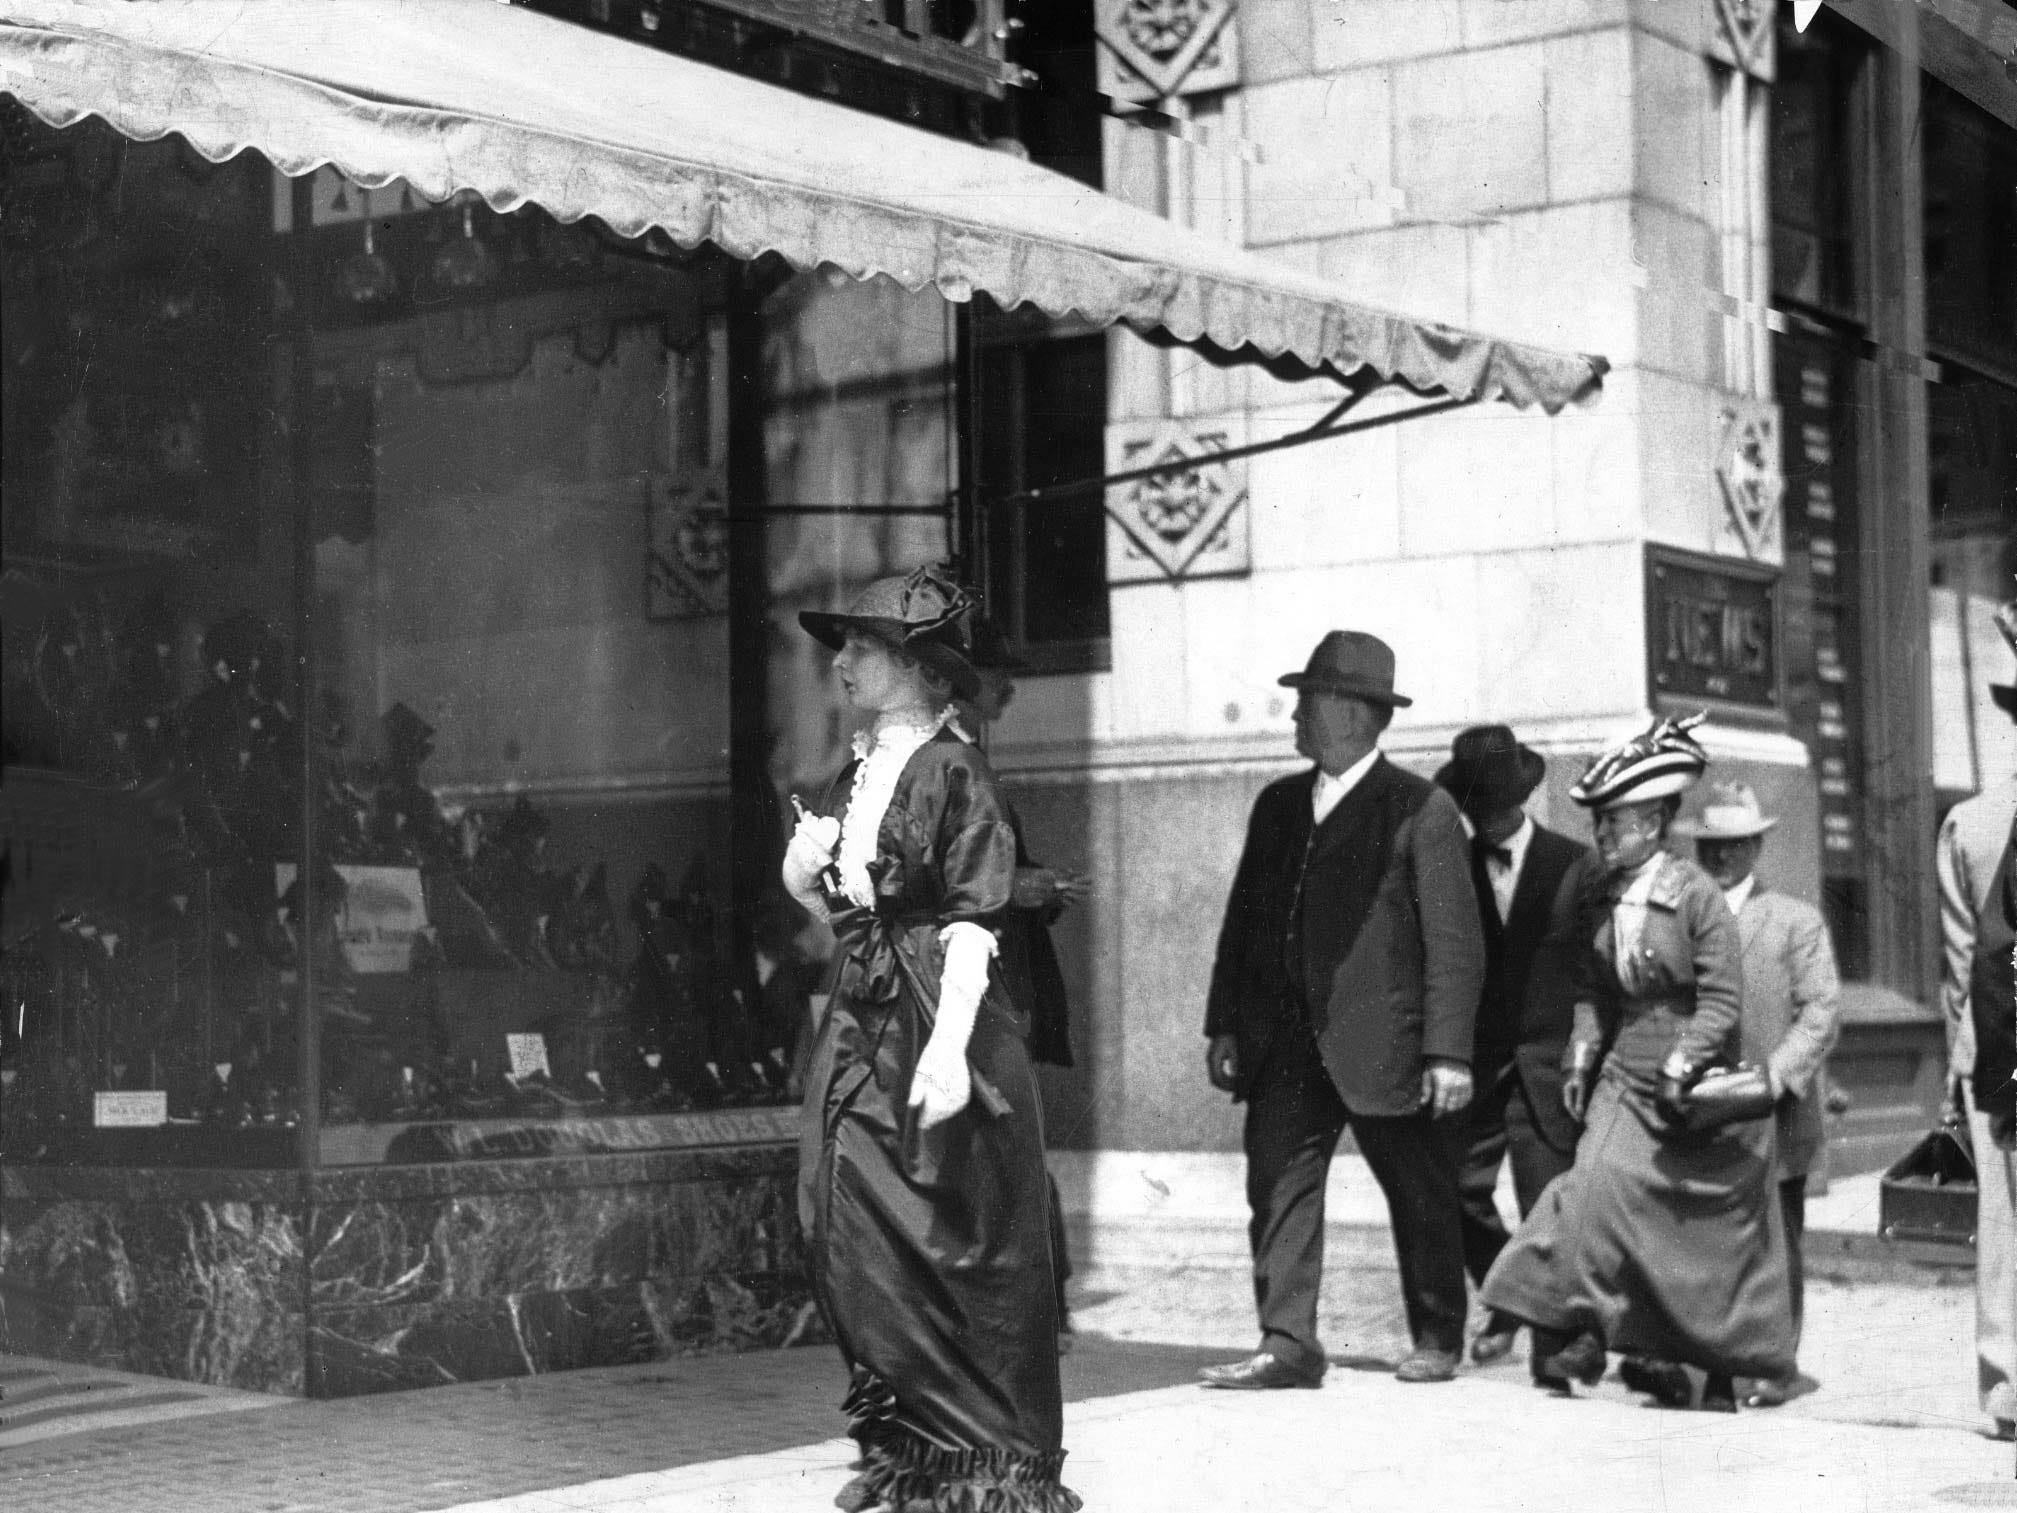 "Dark suits, long dresses and fancy hats were the style of the day when this photo was taken in Downtown Indianapolis circa 1914. Pedestrians are shown walking west along the north side of Washington Street, crossing Bird Street, a north-south street located between Illinois and Meridian streets. At left is a store in the Griffith Block at 34 W. Washington St., featuring a window display of shoes and a ""W. L. Douglas Shoes"" sign. The Indianapolis News Building, built in 1910 at 30W. Washington St., is seen in the background, across Bird Street."